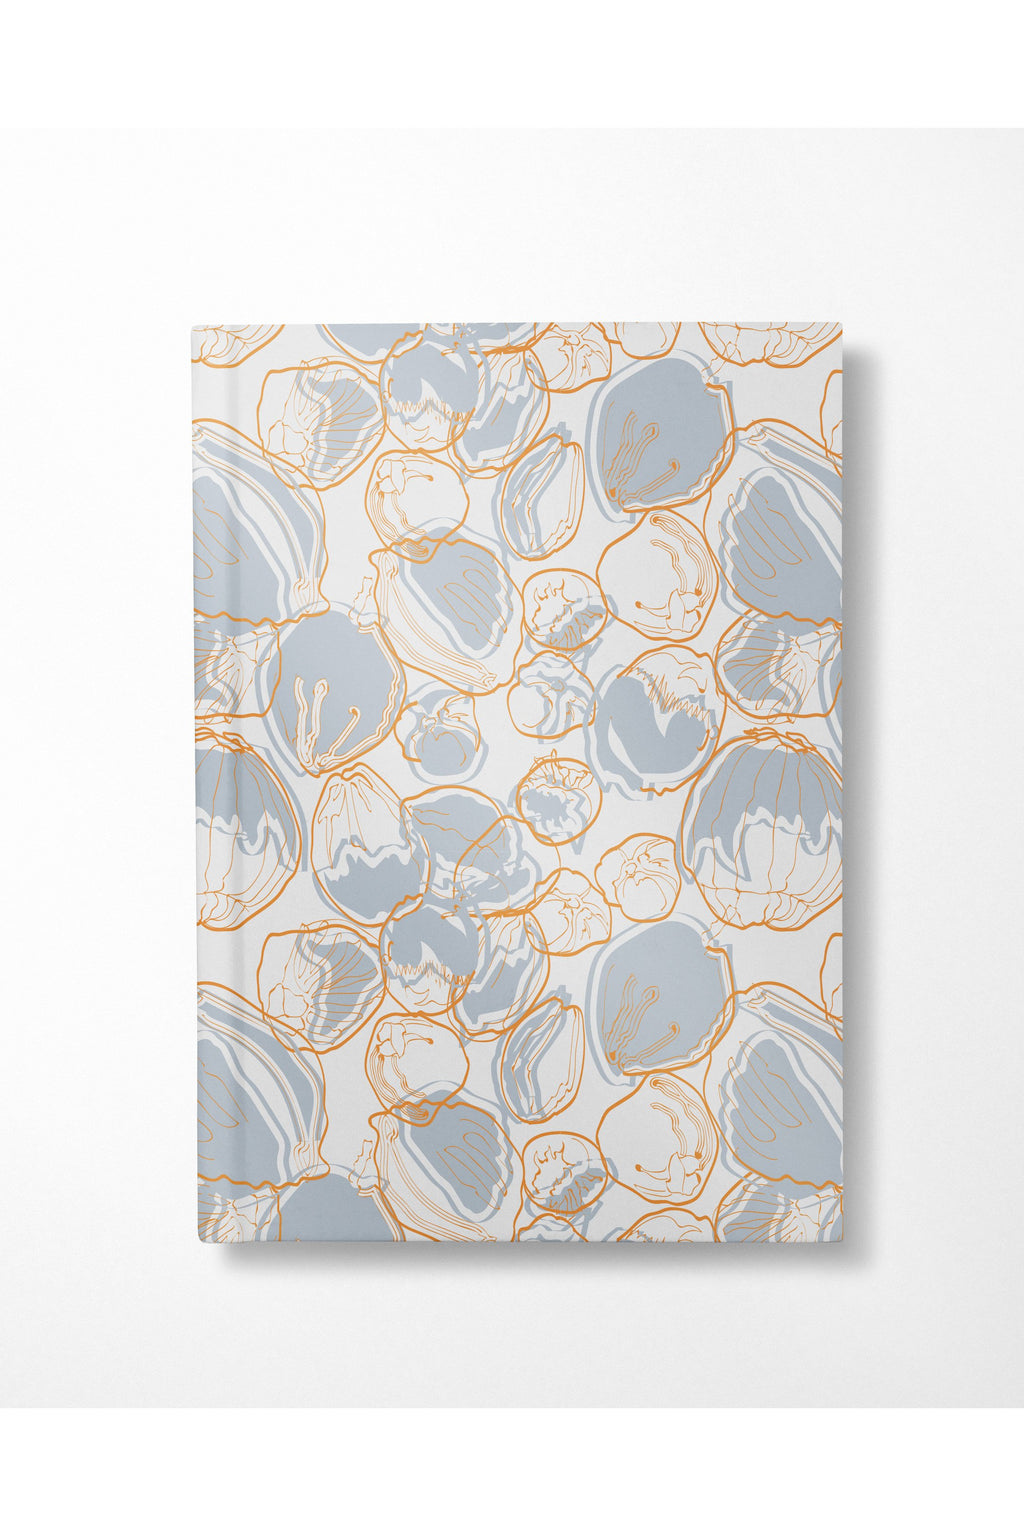 Coco Loco Notebook - Blue - Hausofassembly